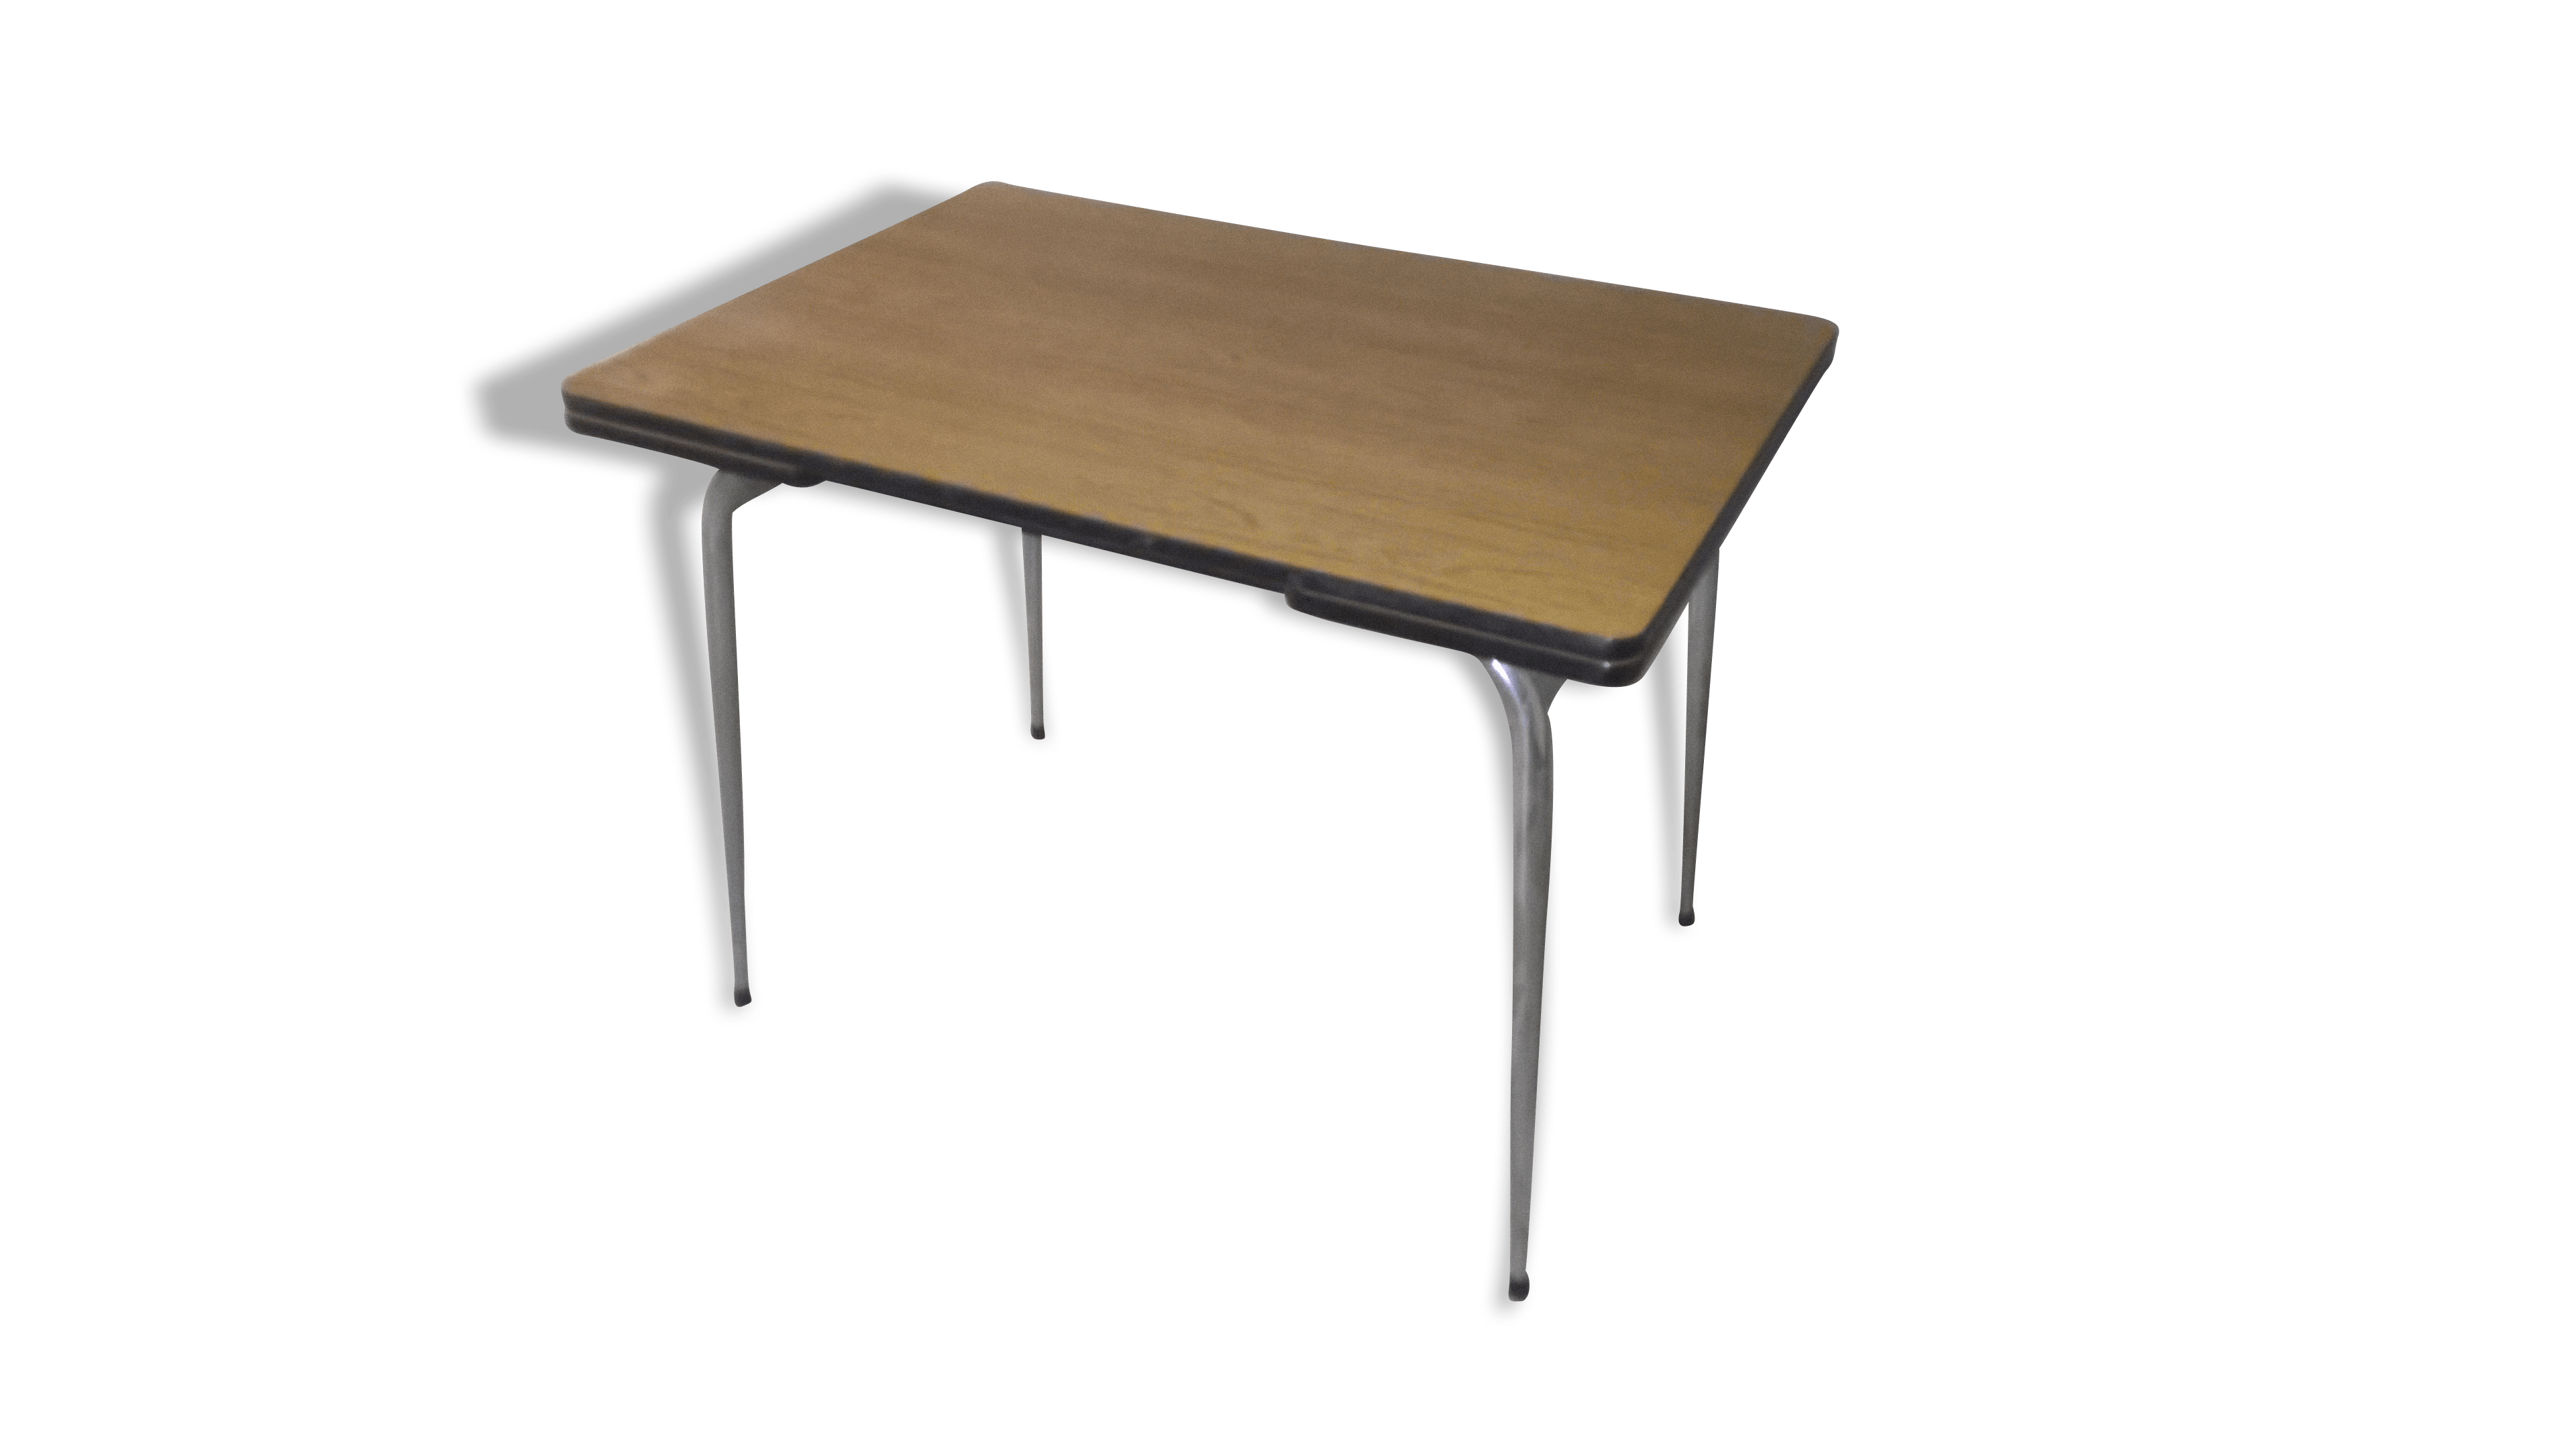 Relooker Un Meuble En Formica Excellent Table De Cuisine Formica Annes With Table De